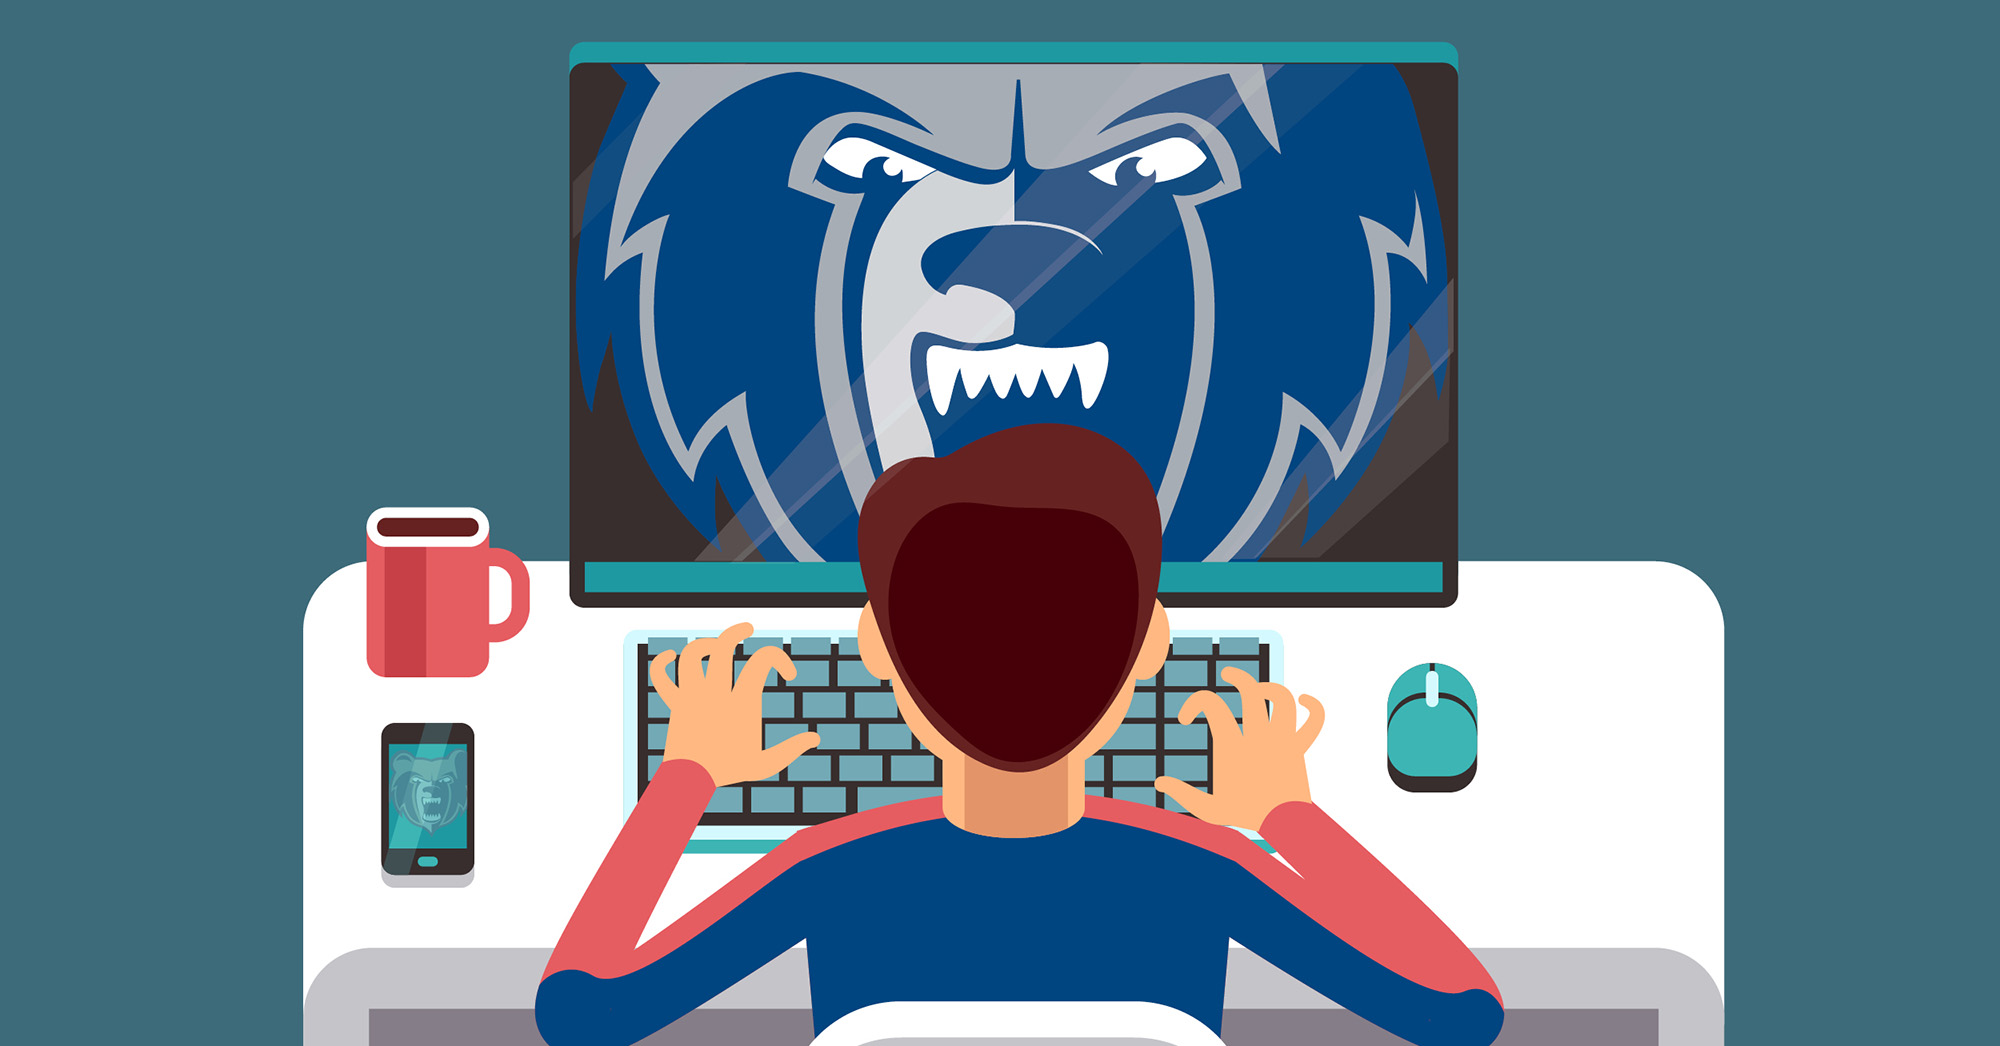 Illustration of a student working on a computer with a Bruin logo on the screen.